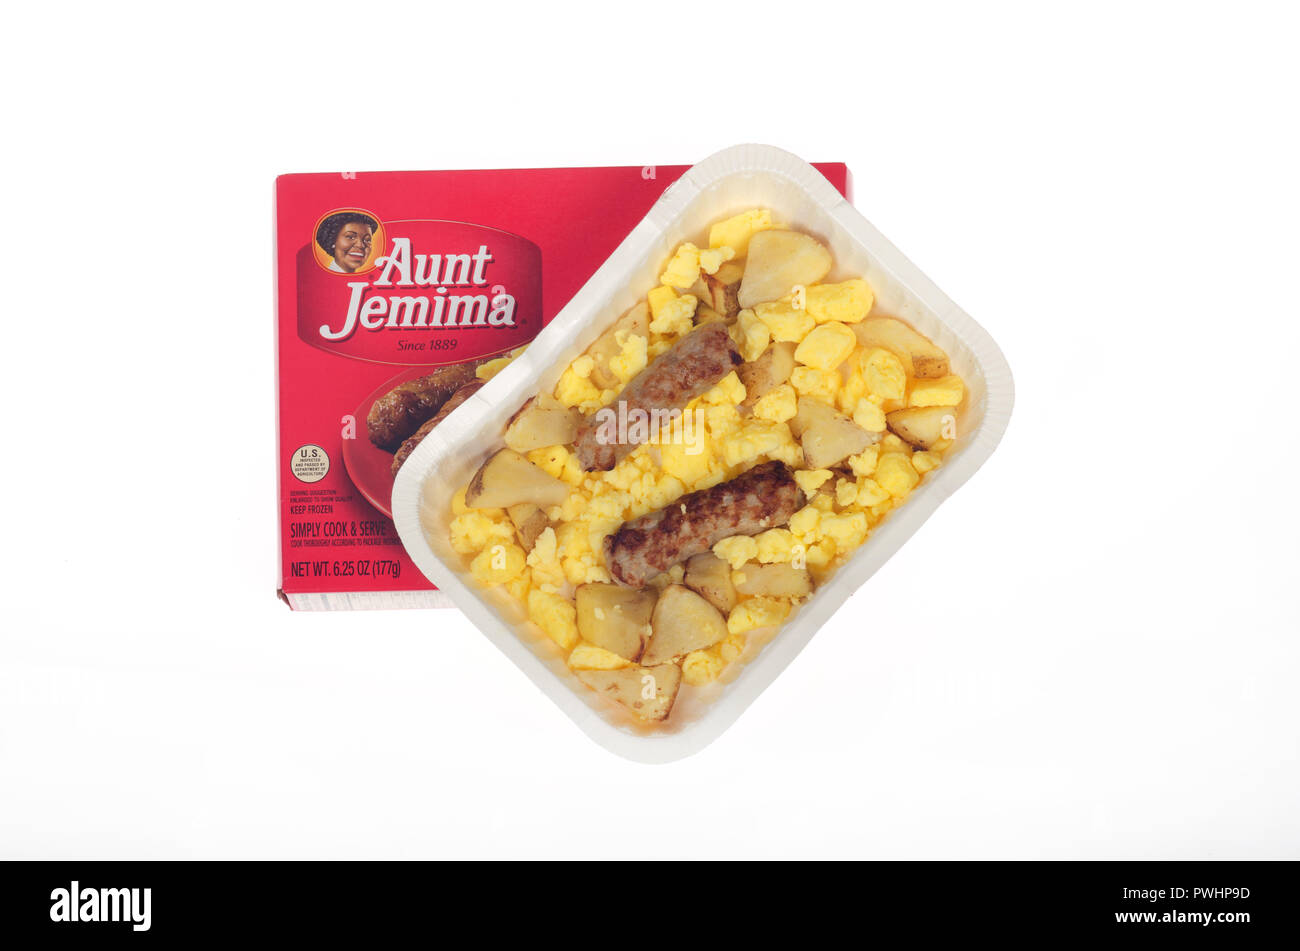 Hot, microwaved from frozen breakfast tray from Aunt Jemima of scrambled eggs, roasted potatoes and sausage links on white with box - Stock Image